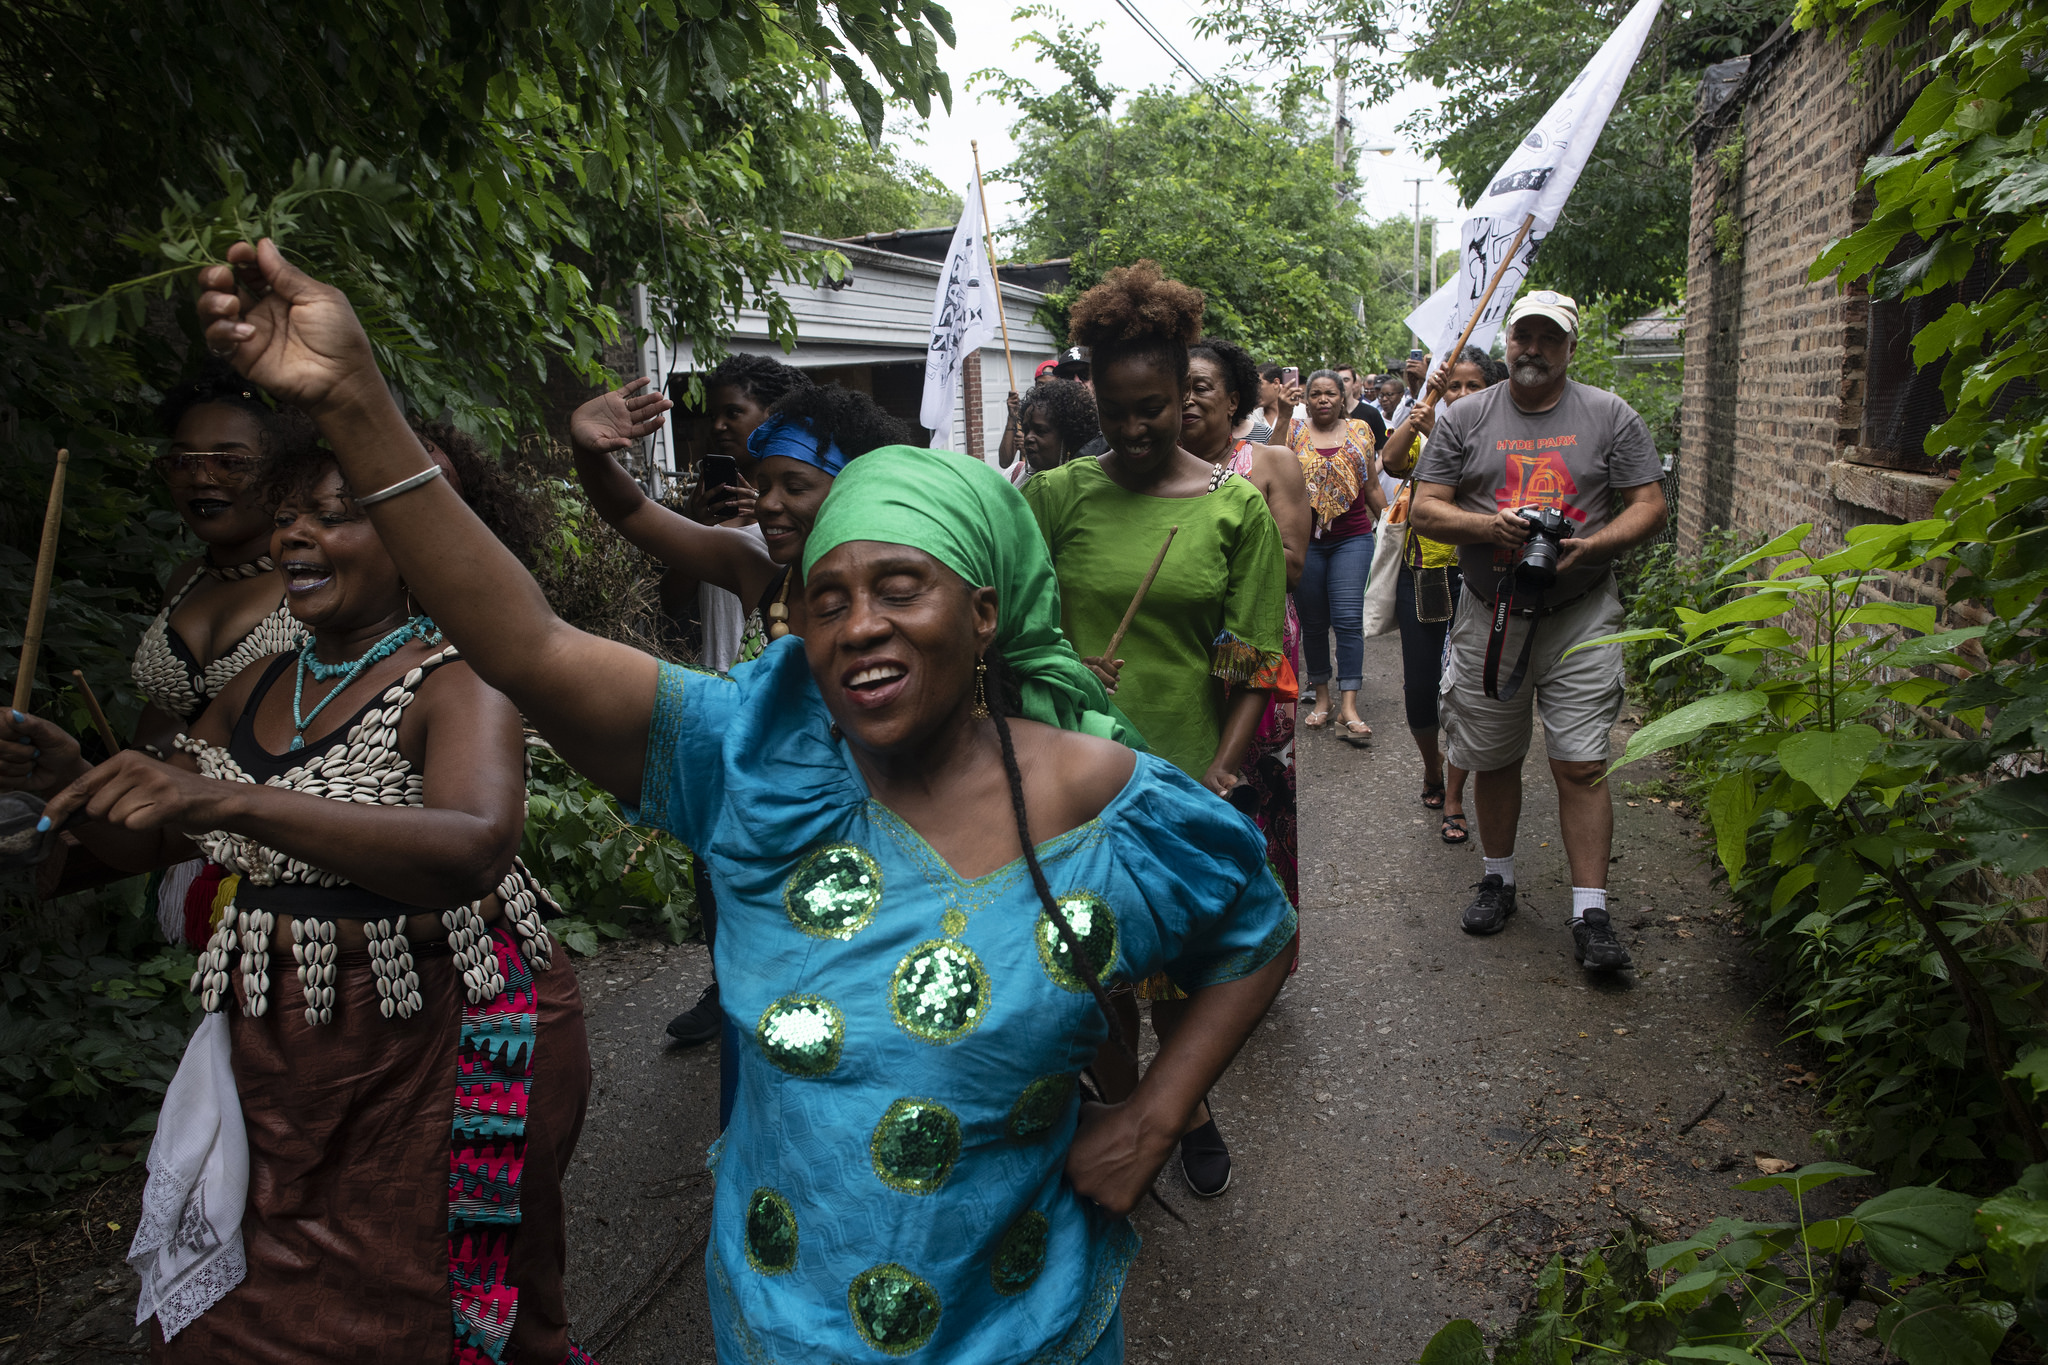 An opening procession of musicians, dancers and artists kicks off South Shore's Back Alley Jazz event. All photos by Marc Monaghan.